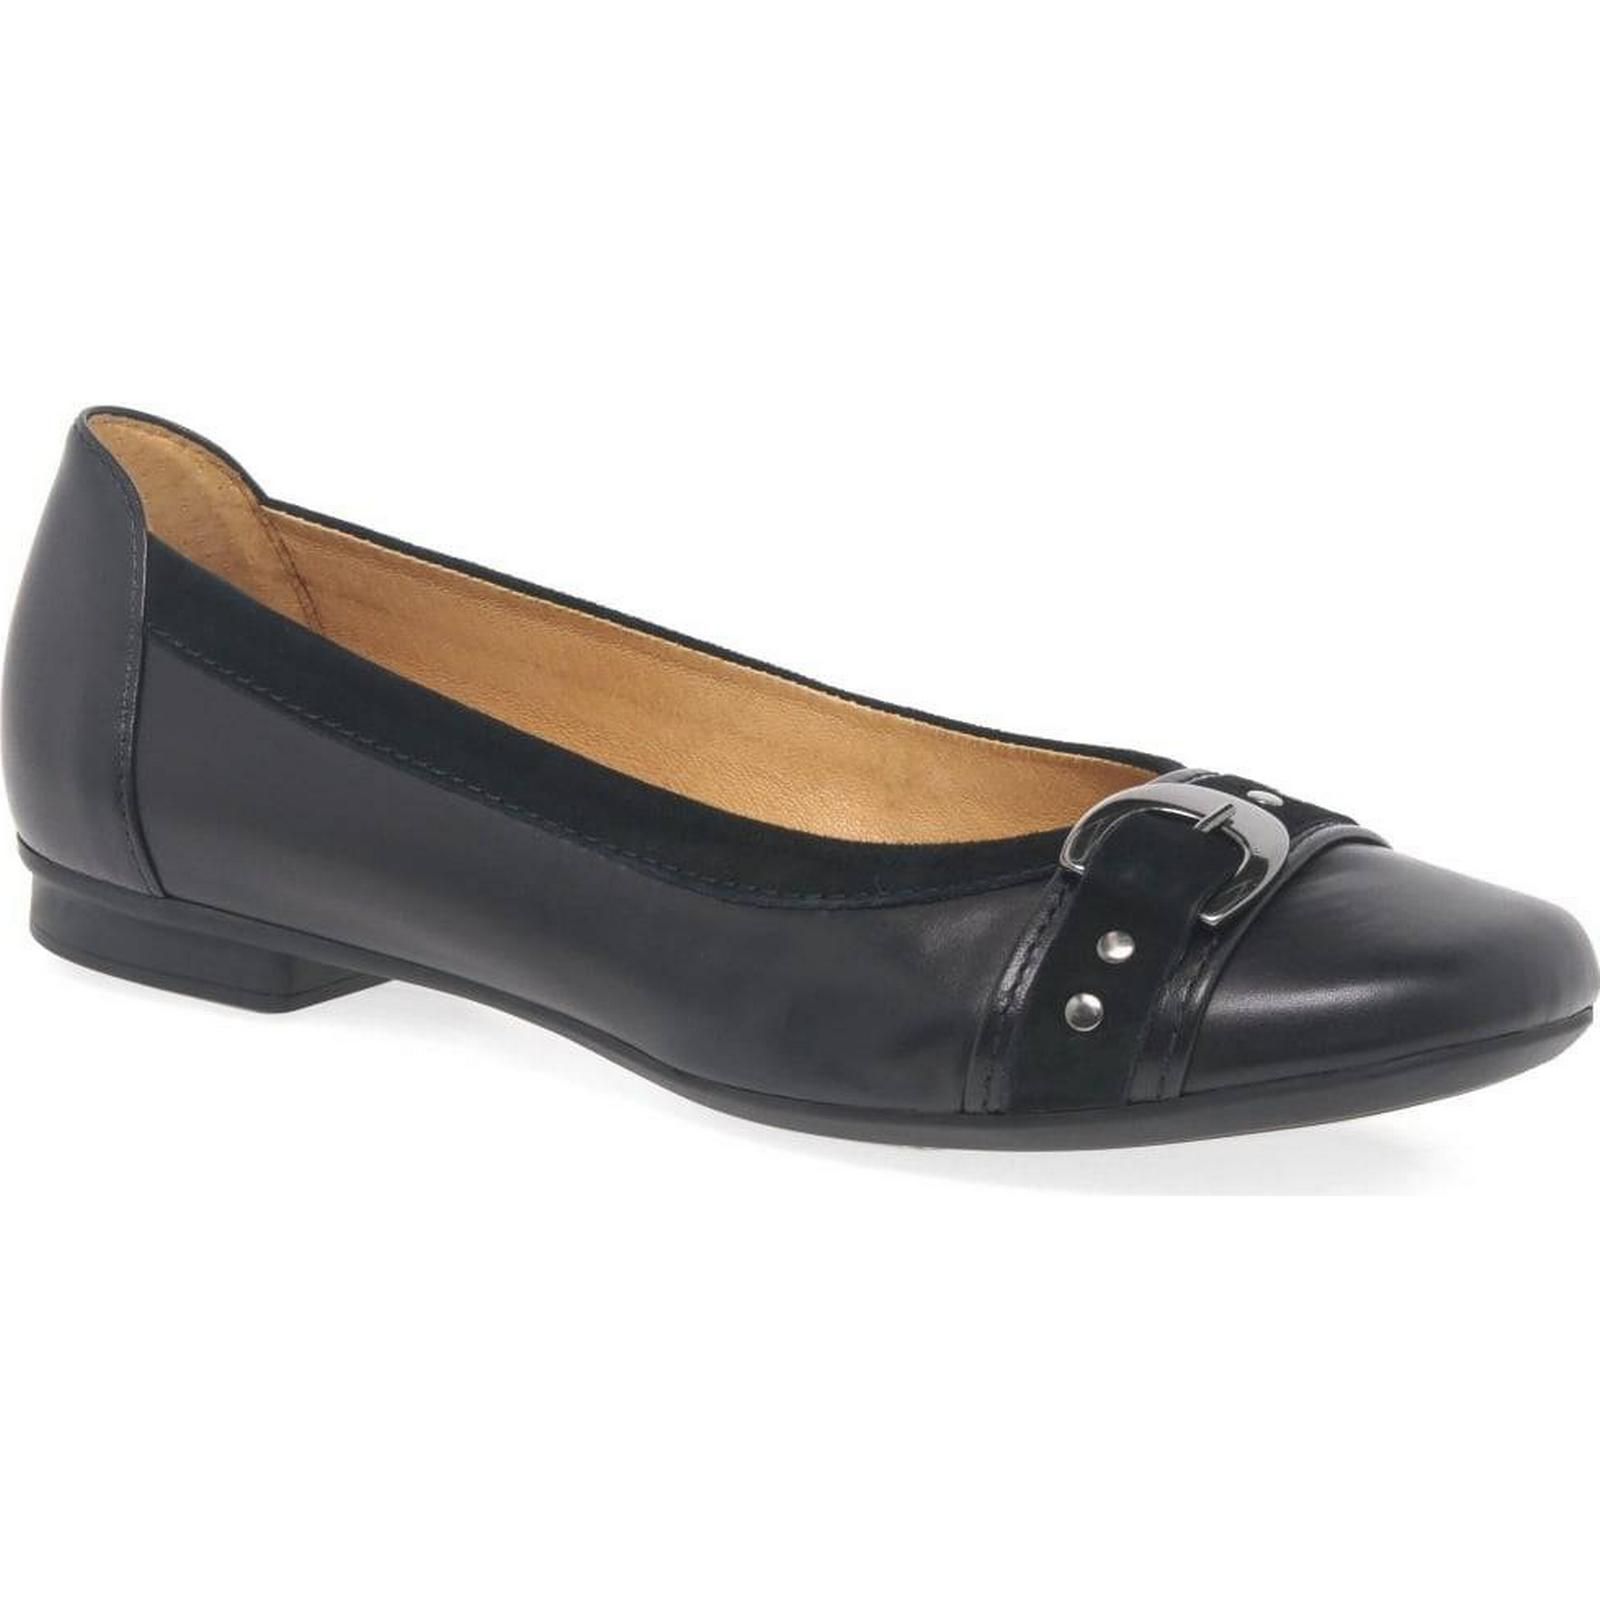 Gabor Indiana Womens Casual 6.5 Pumps Colour: Black/Suede, Size: 6.5 Casual 840b67